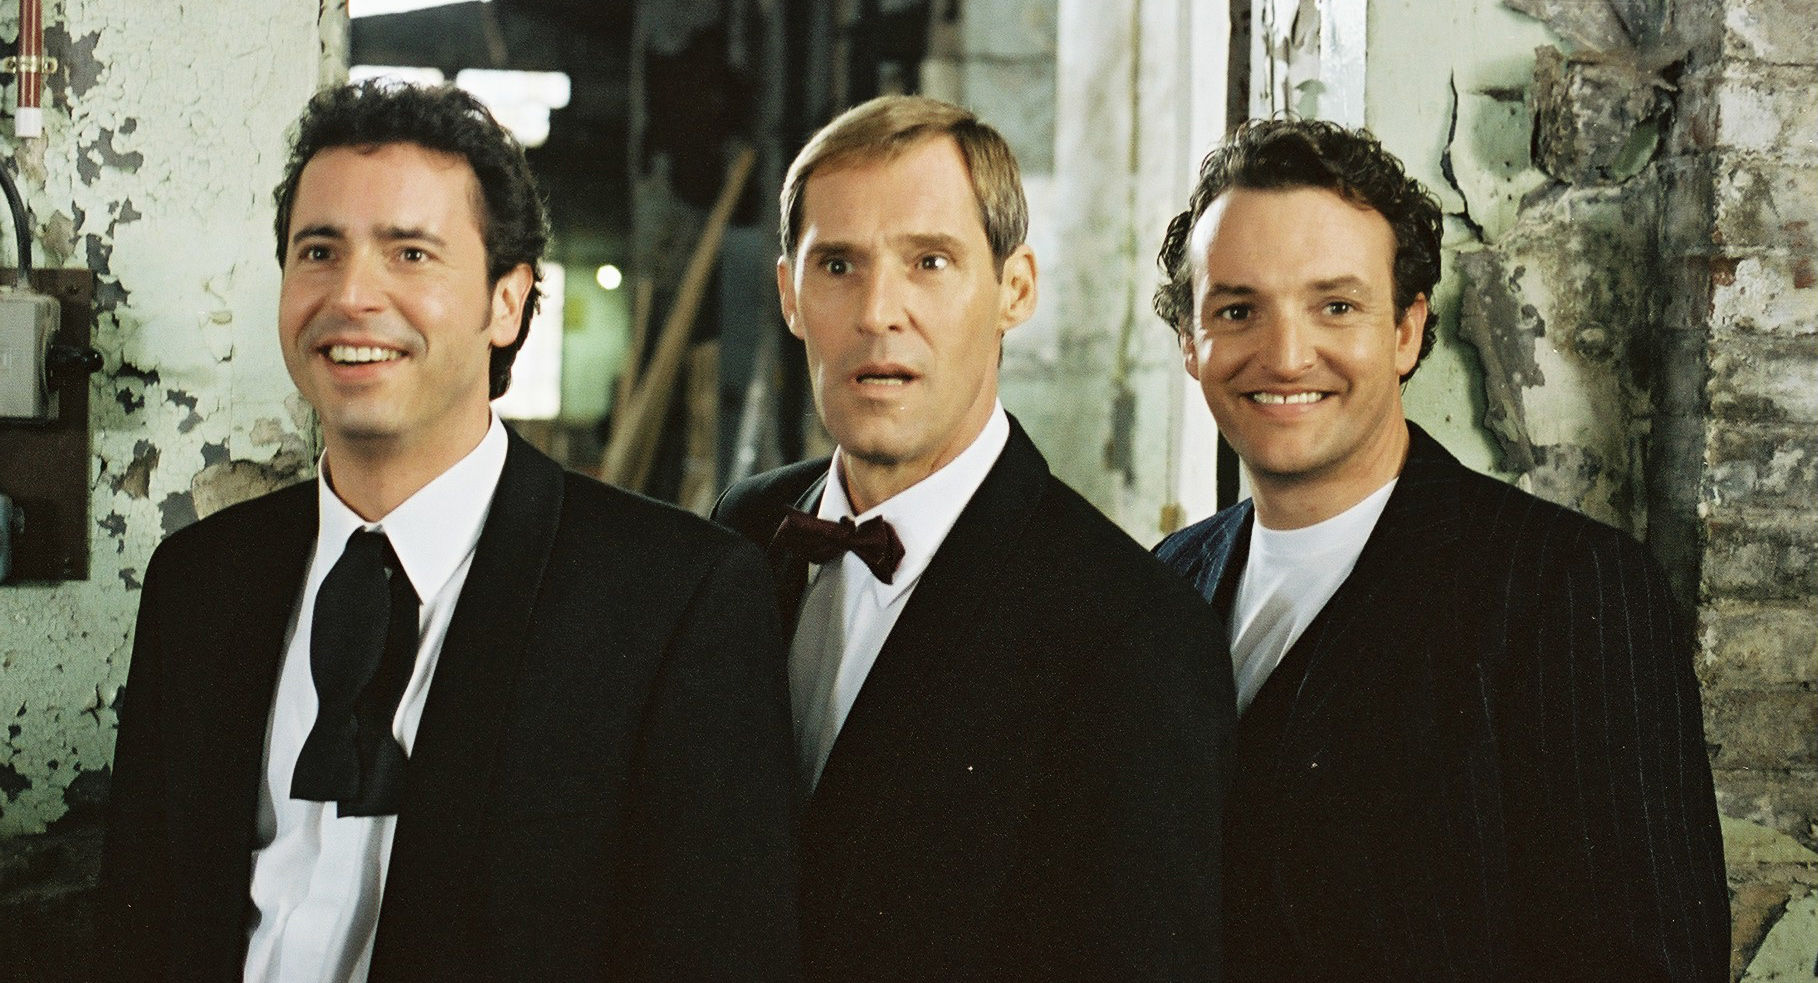 Nicholas Newman (Tony), Ben Cross (David Greenbaum), Marco Rima (Eddy)